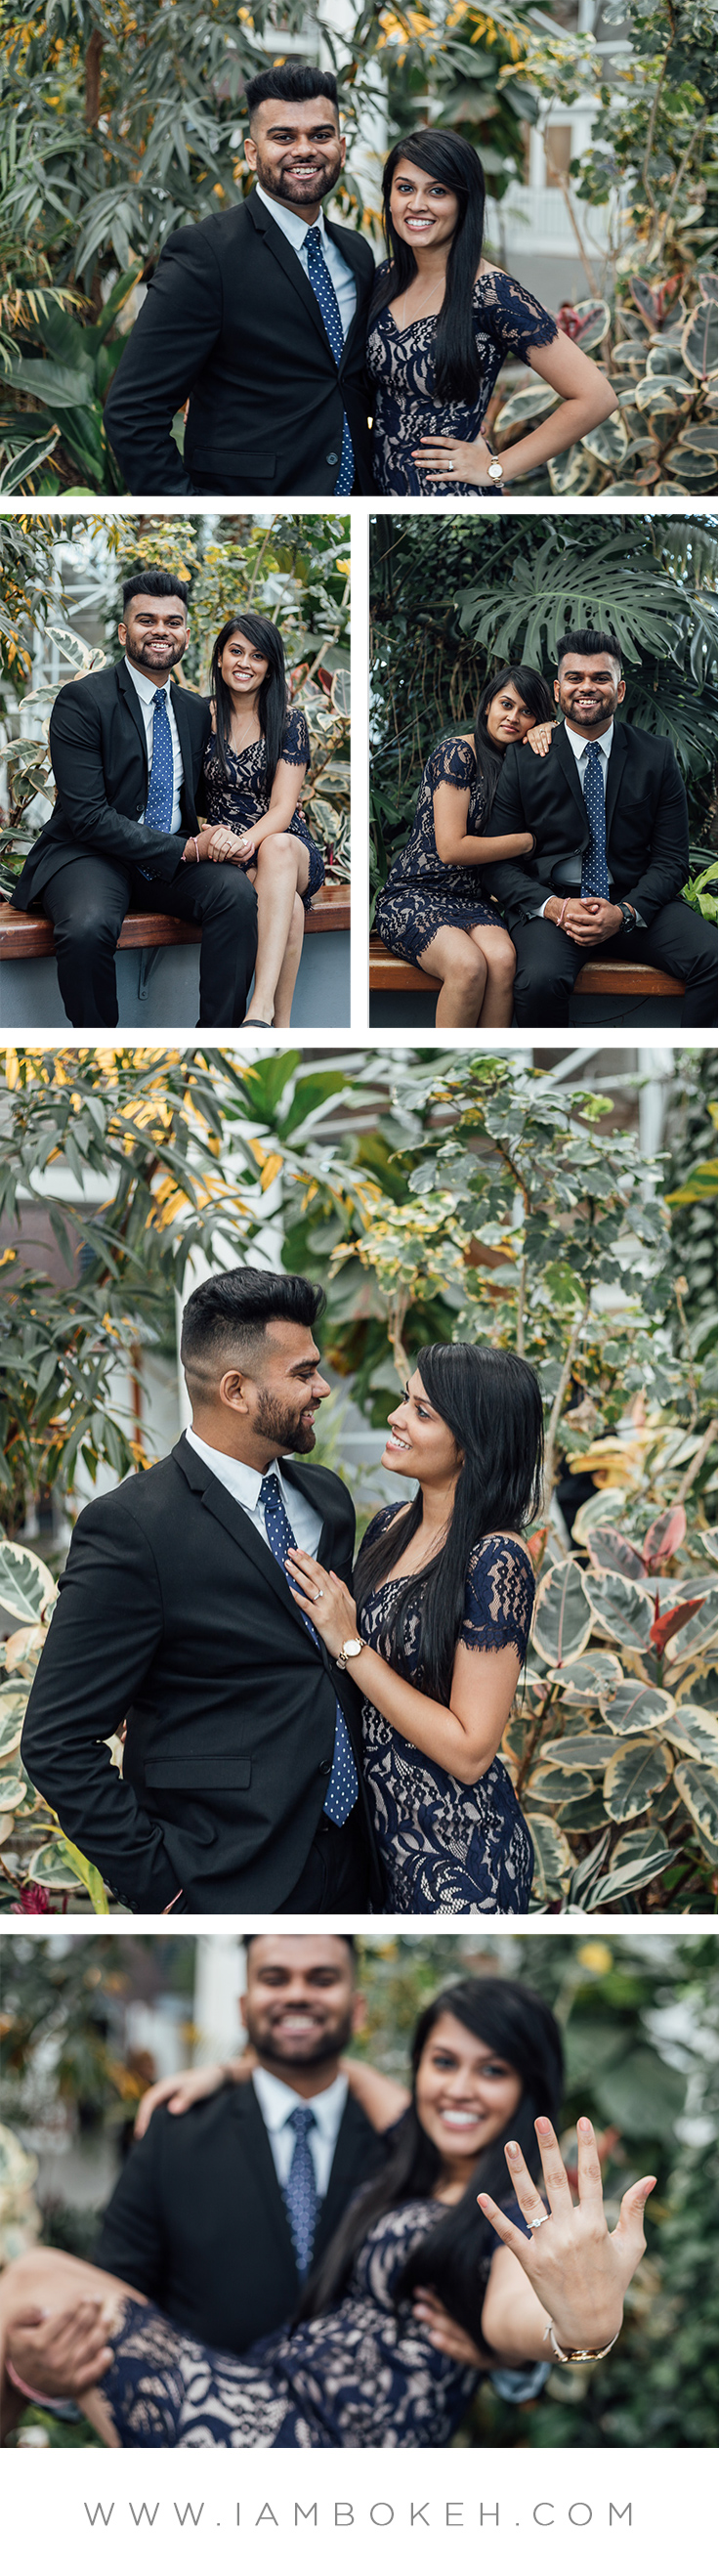 Bokéh Studios | Engagement Shoot in Chicago: Parth & Binita